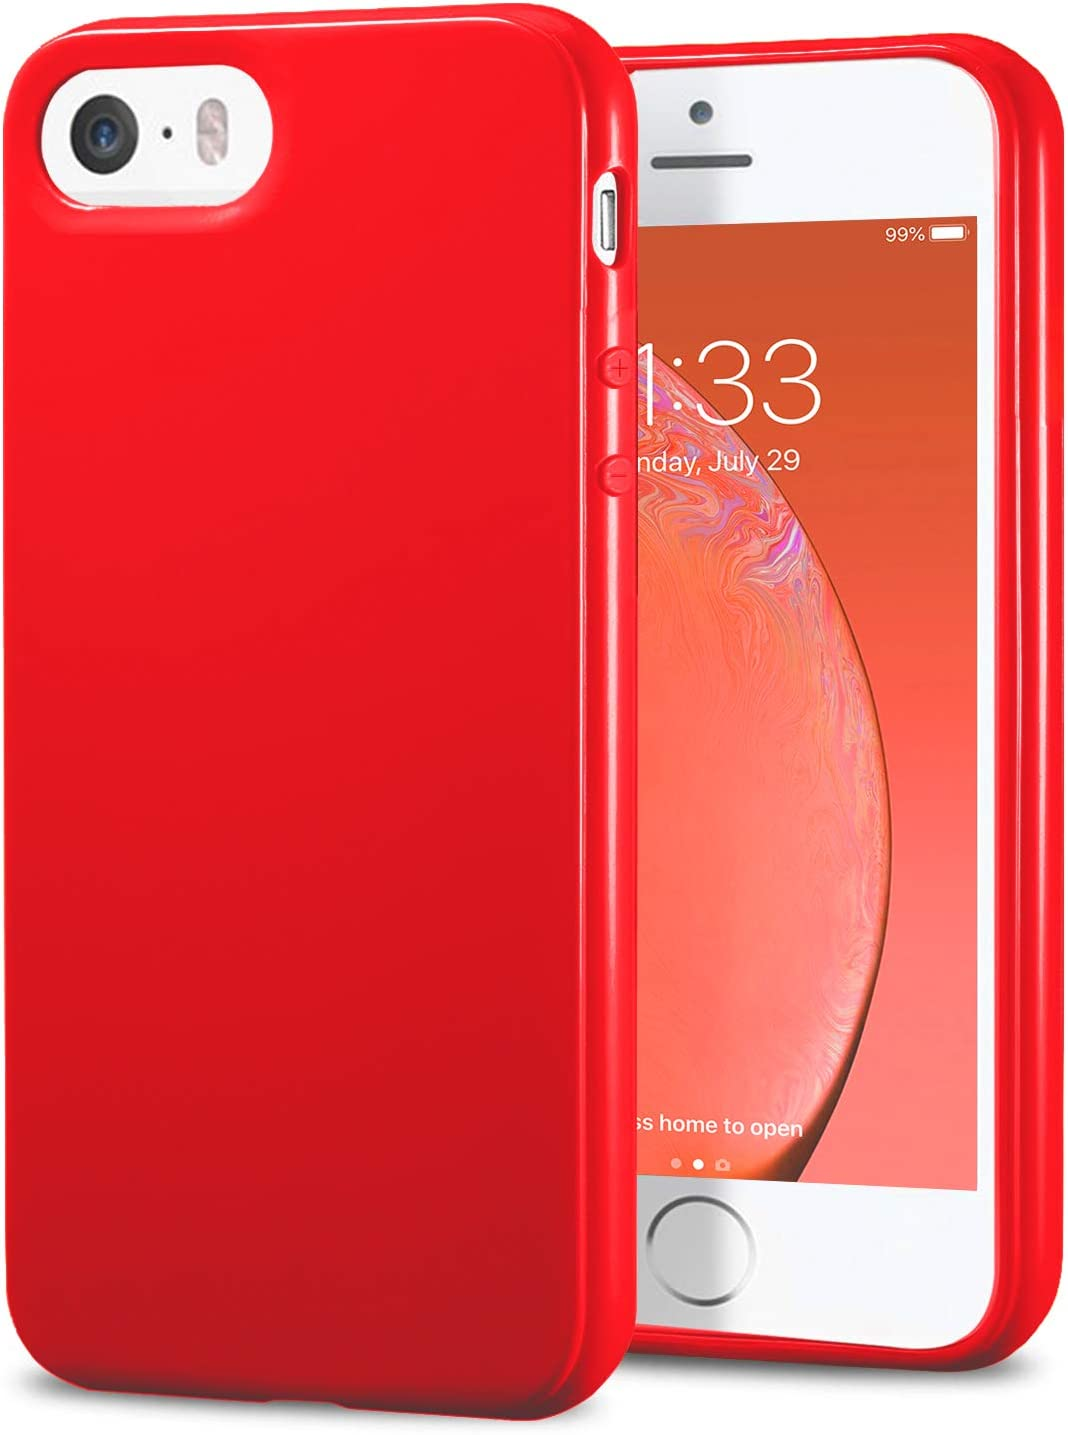 TENOC Phone Case Compatible for Apple iPhone SE 2016/ iPhone 5S/ iPhone 5, Slim Fit Cases Soft TPU Bumper Protective Cover, Glossy Red